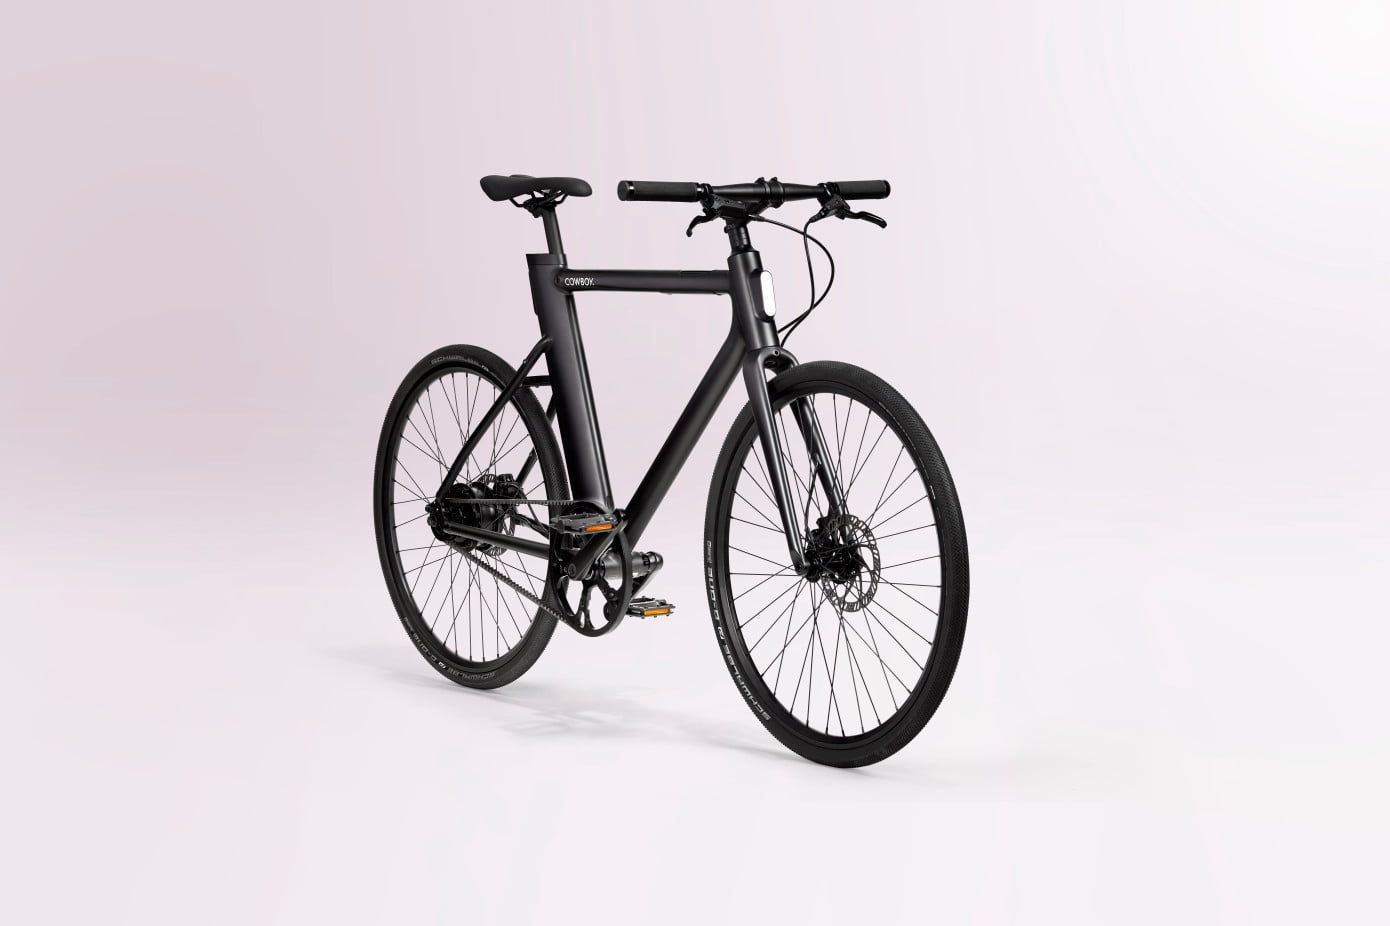 Cowboy S Smart Electronic Bikes Are A New Standard For Ebikes